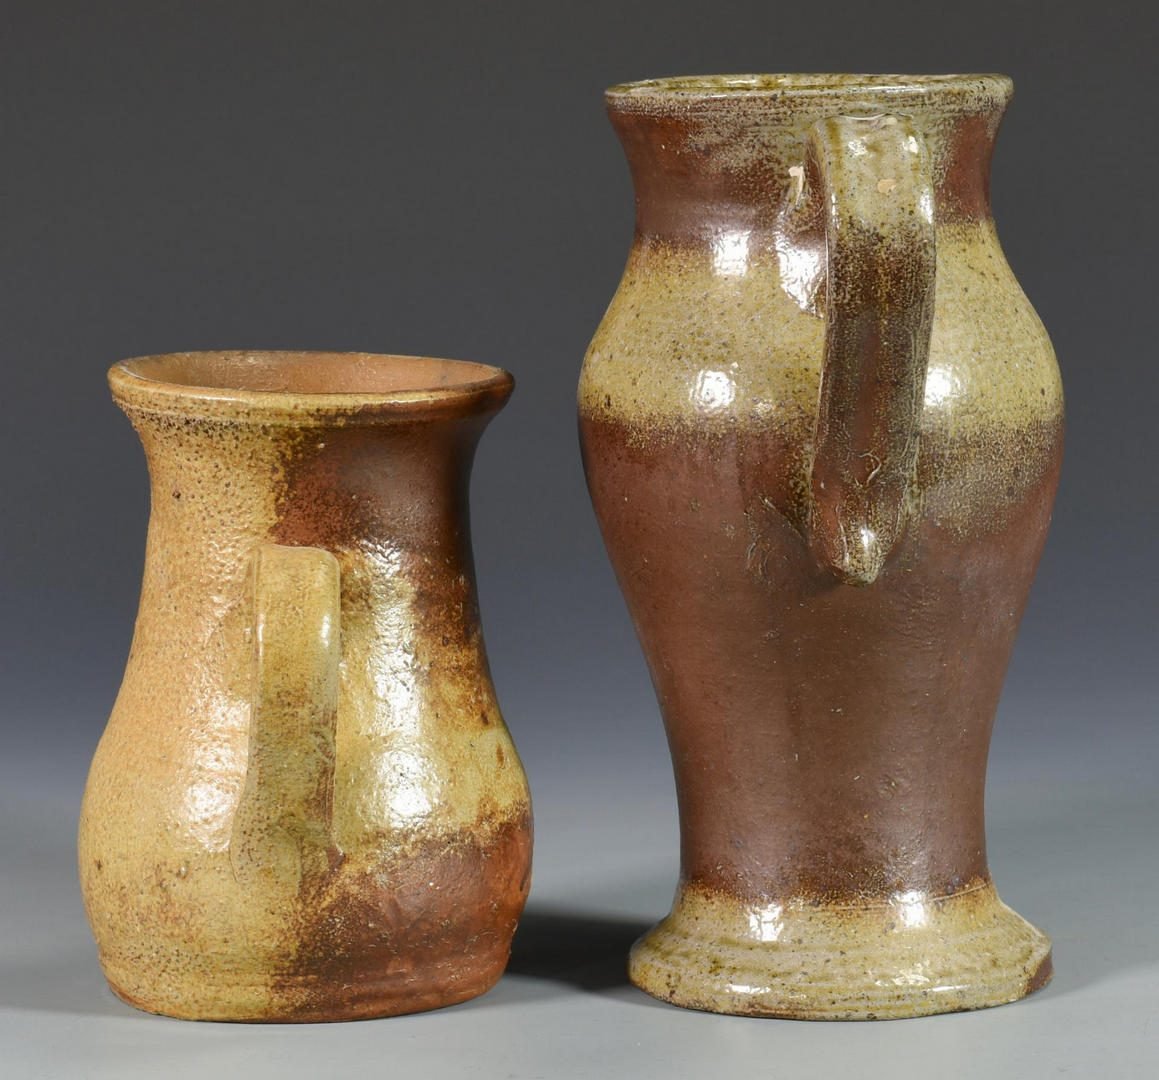 Lot 673: 2 Middle TN Urn Form Pottery Items